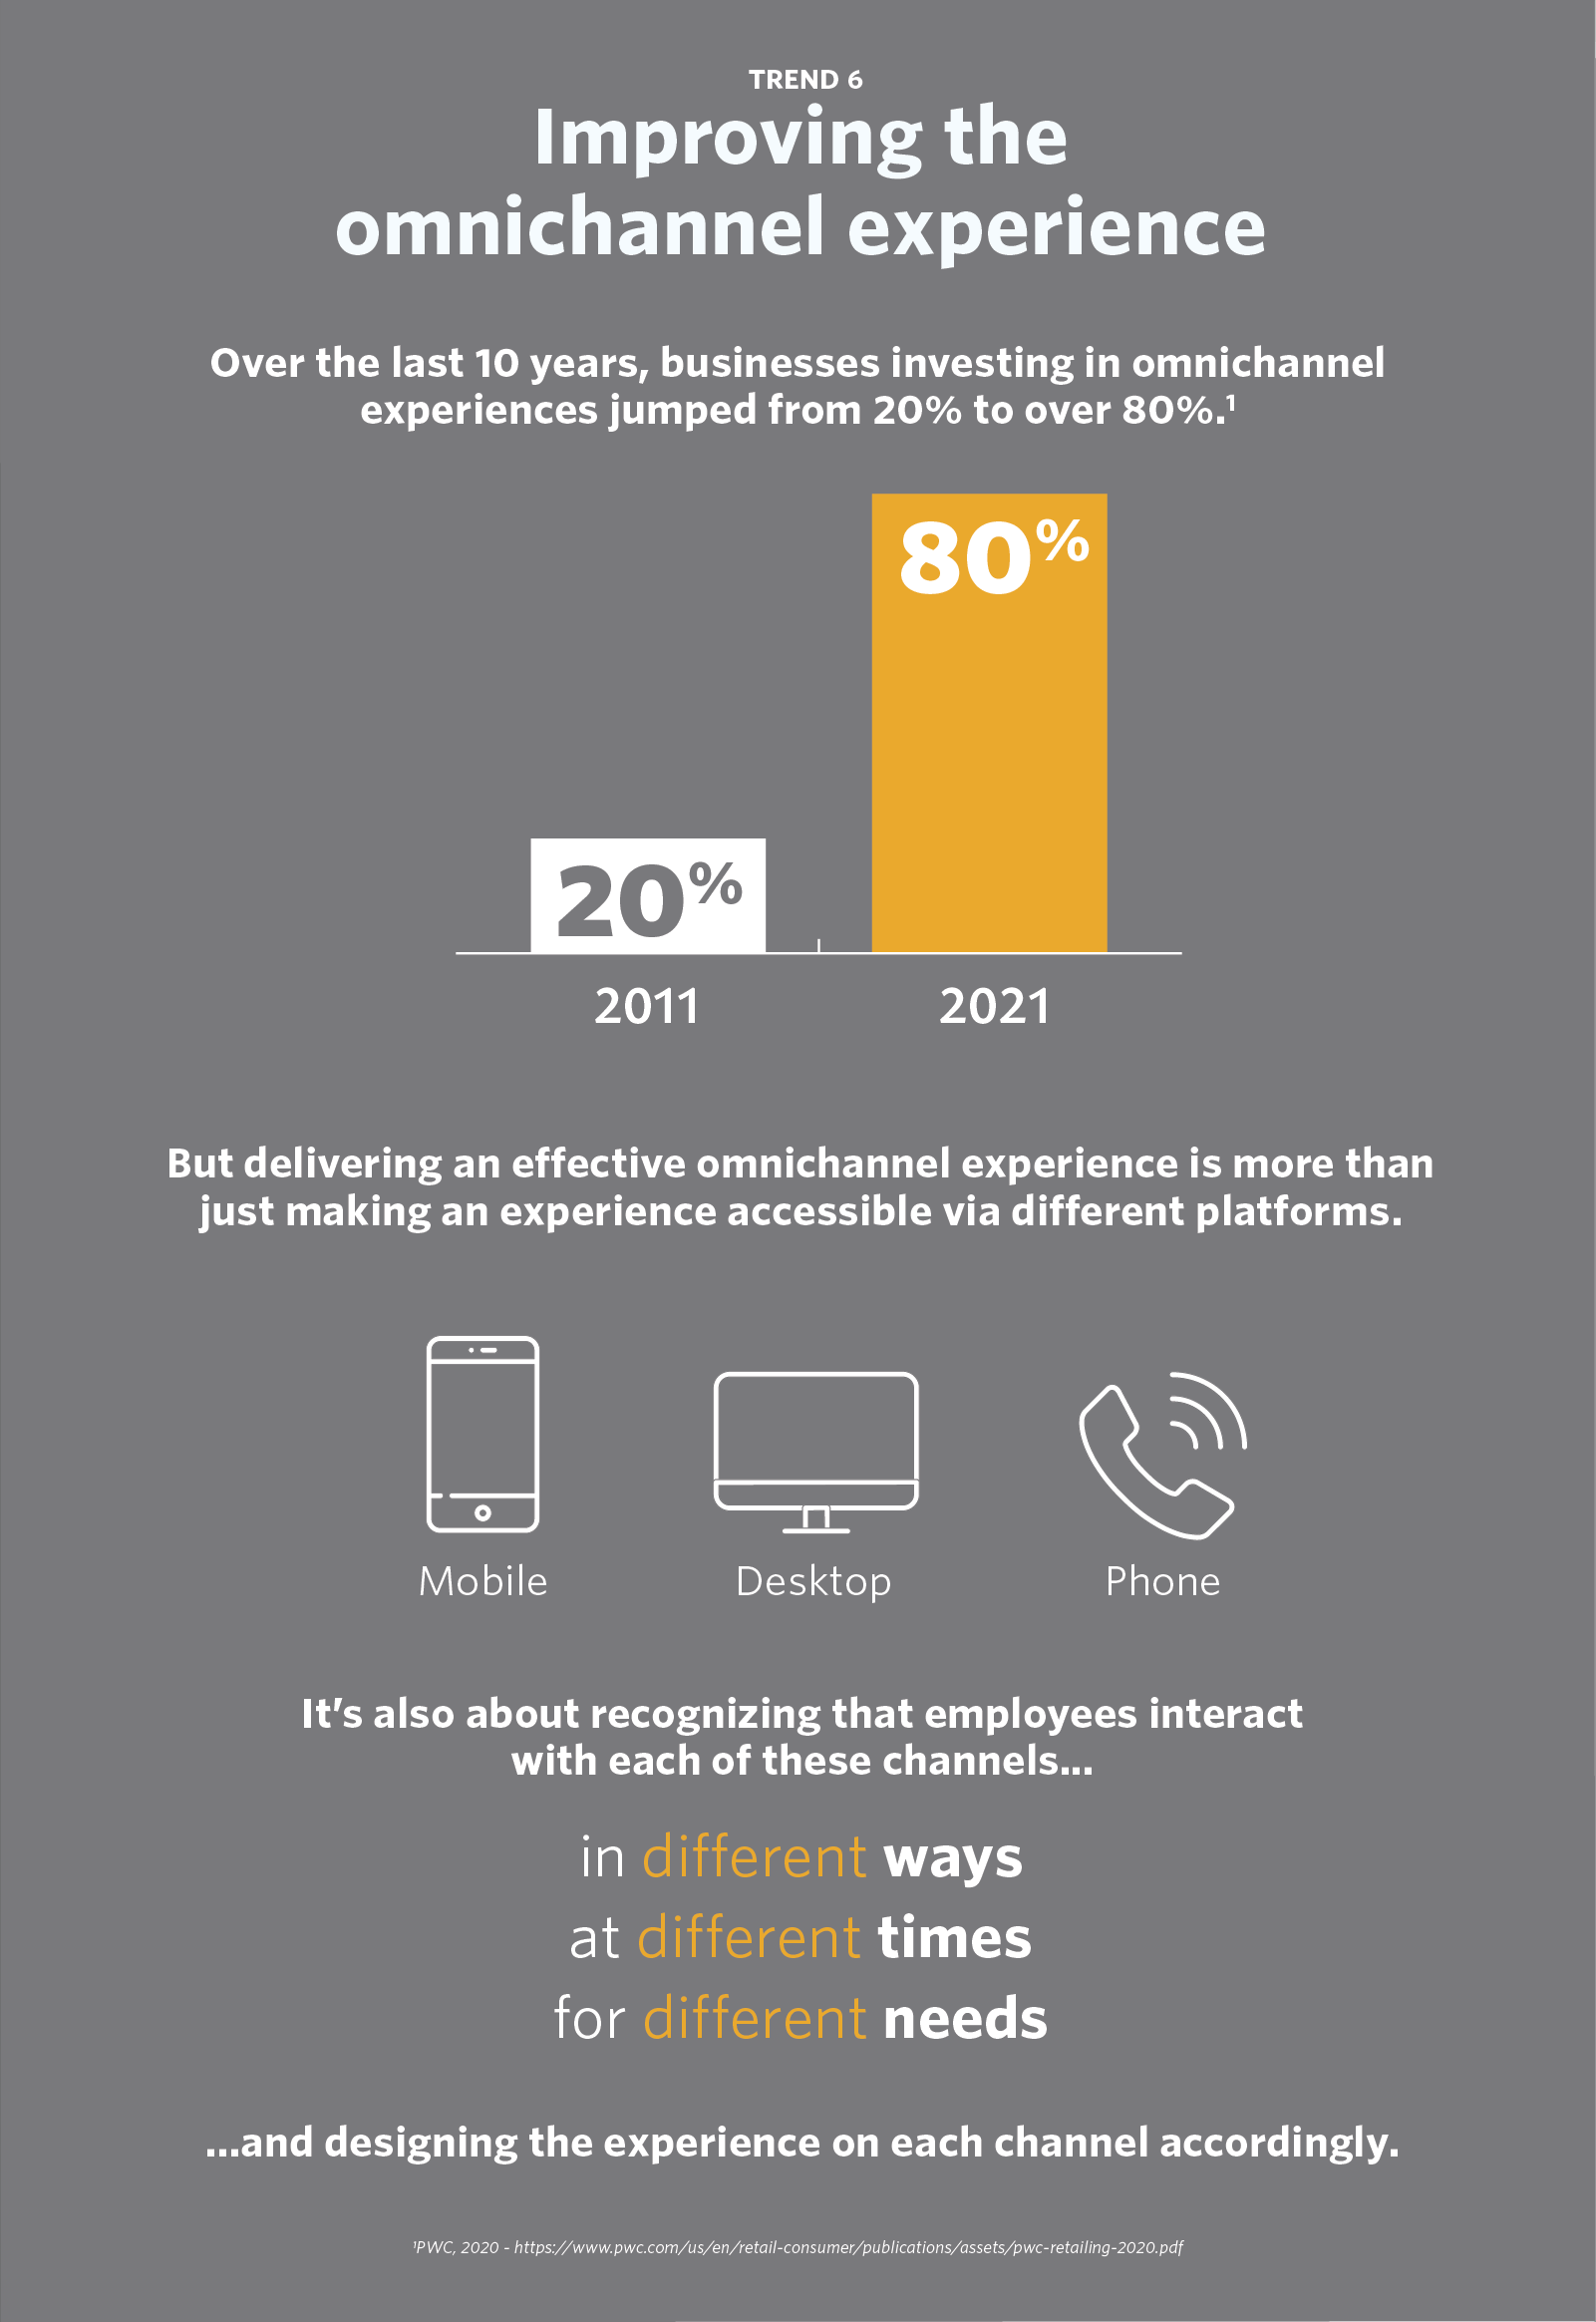 Trend 6 - Improving the omnichannel experience